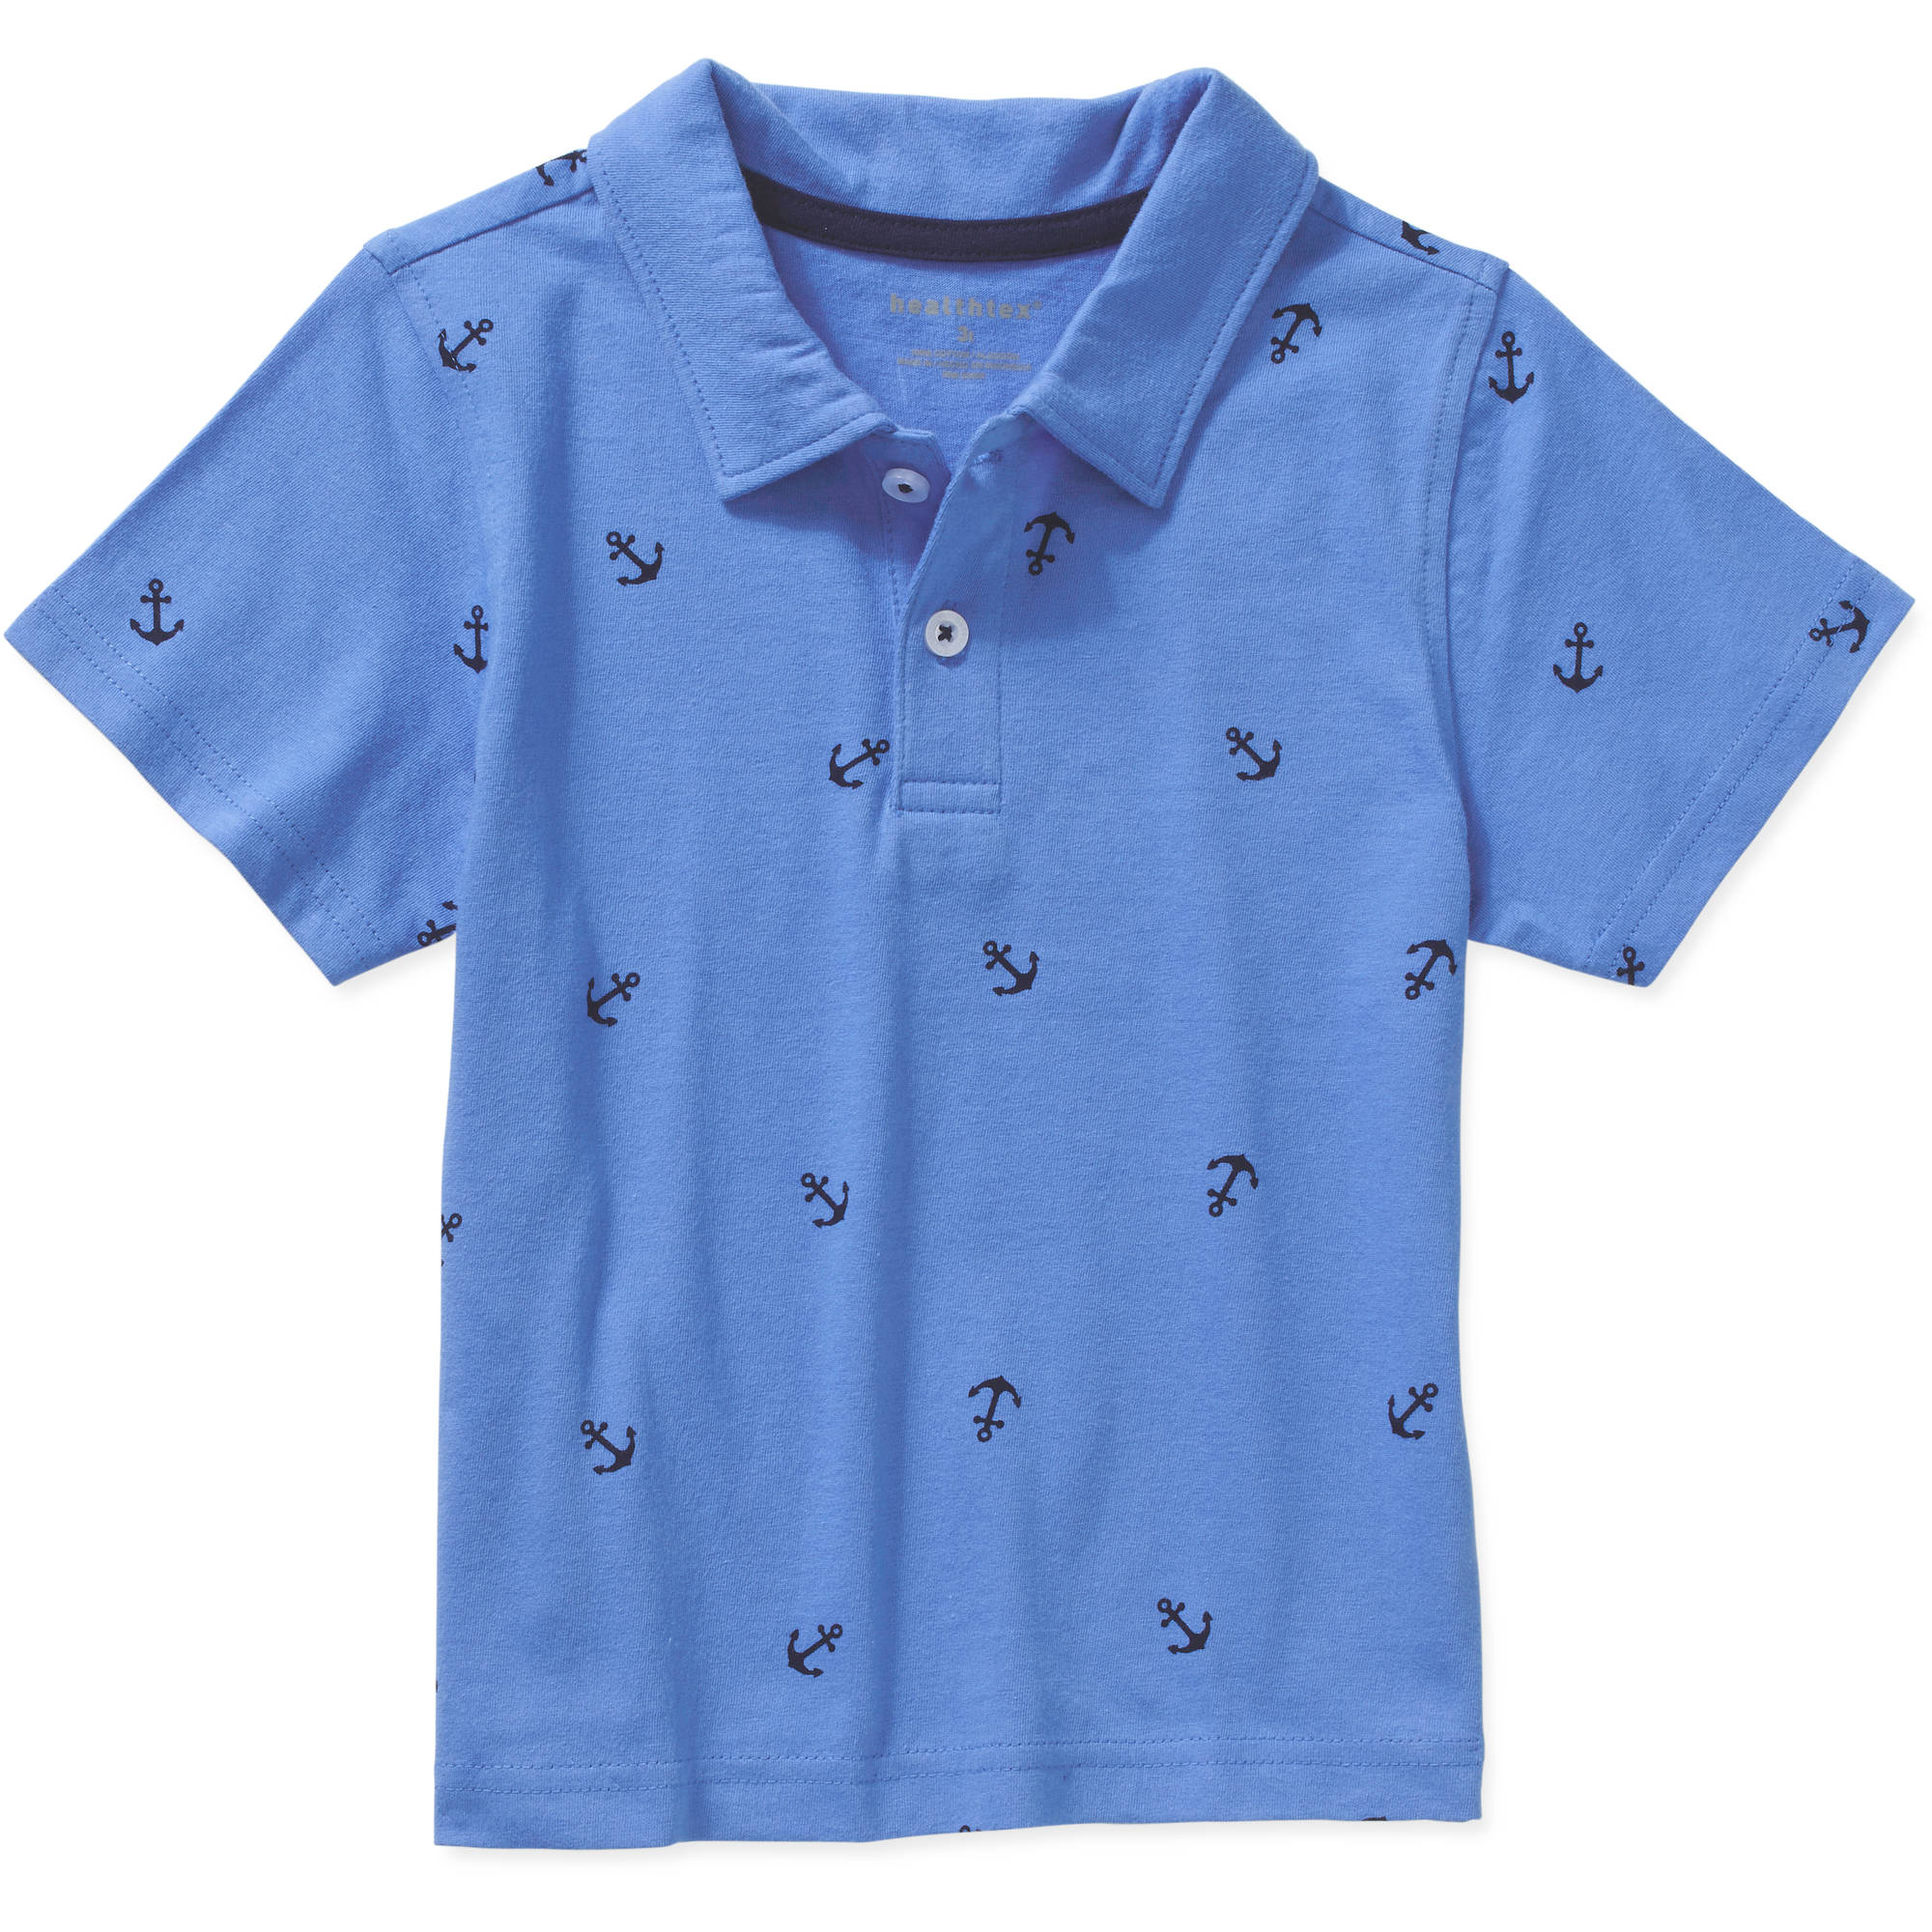 Healthtex Toddler Boys' All-Over Print Cotton Polo Shirt